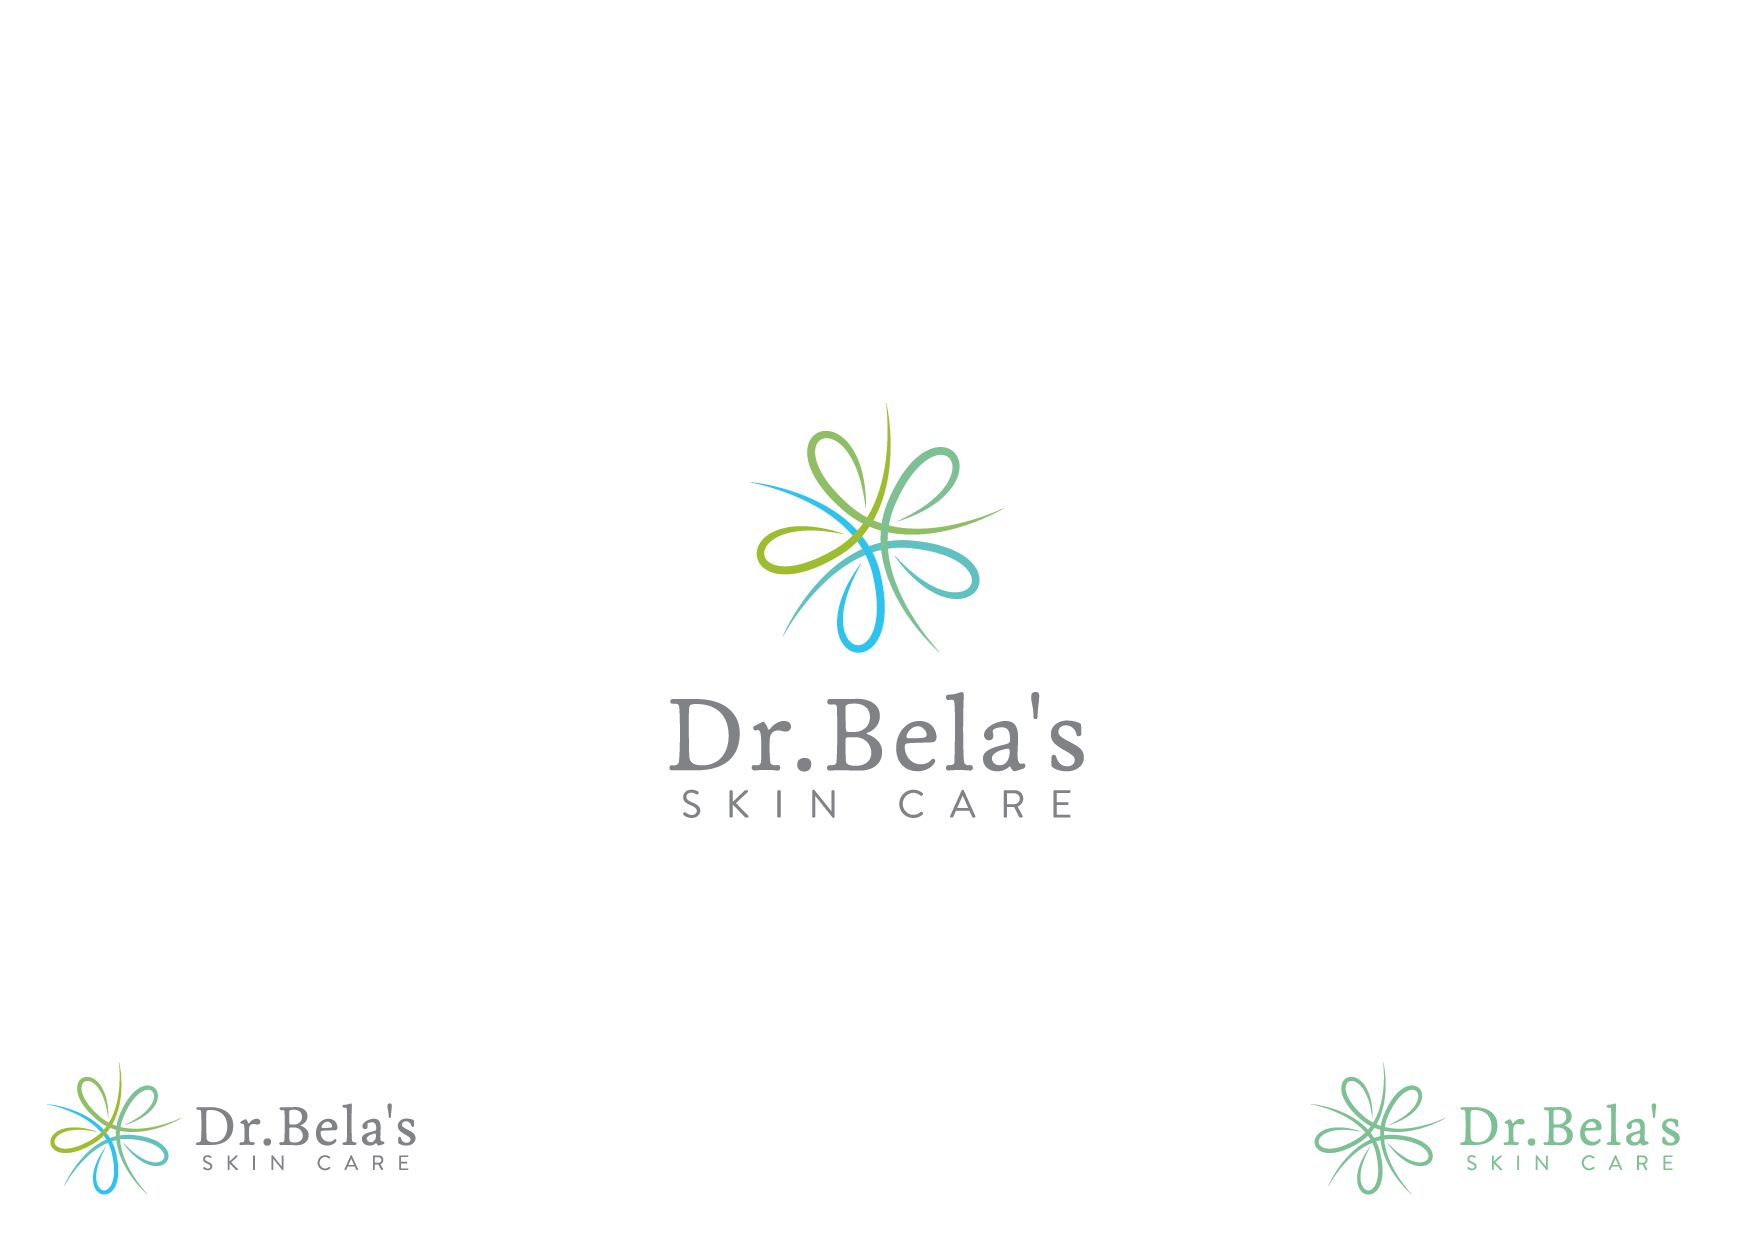 Create the next logo for Dr. Bela's Skin Care